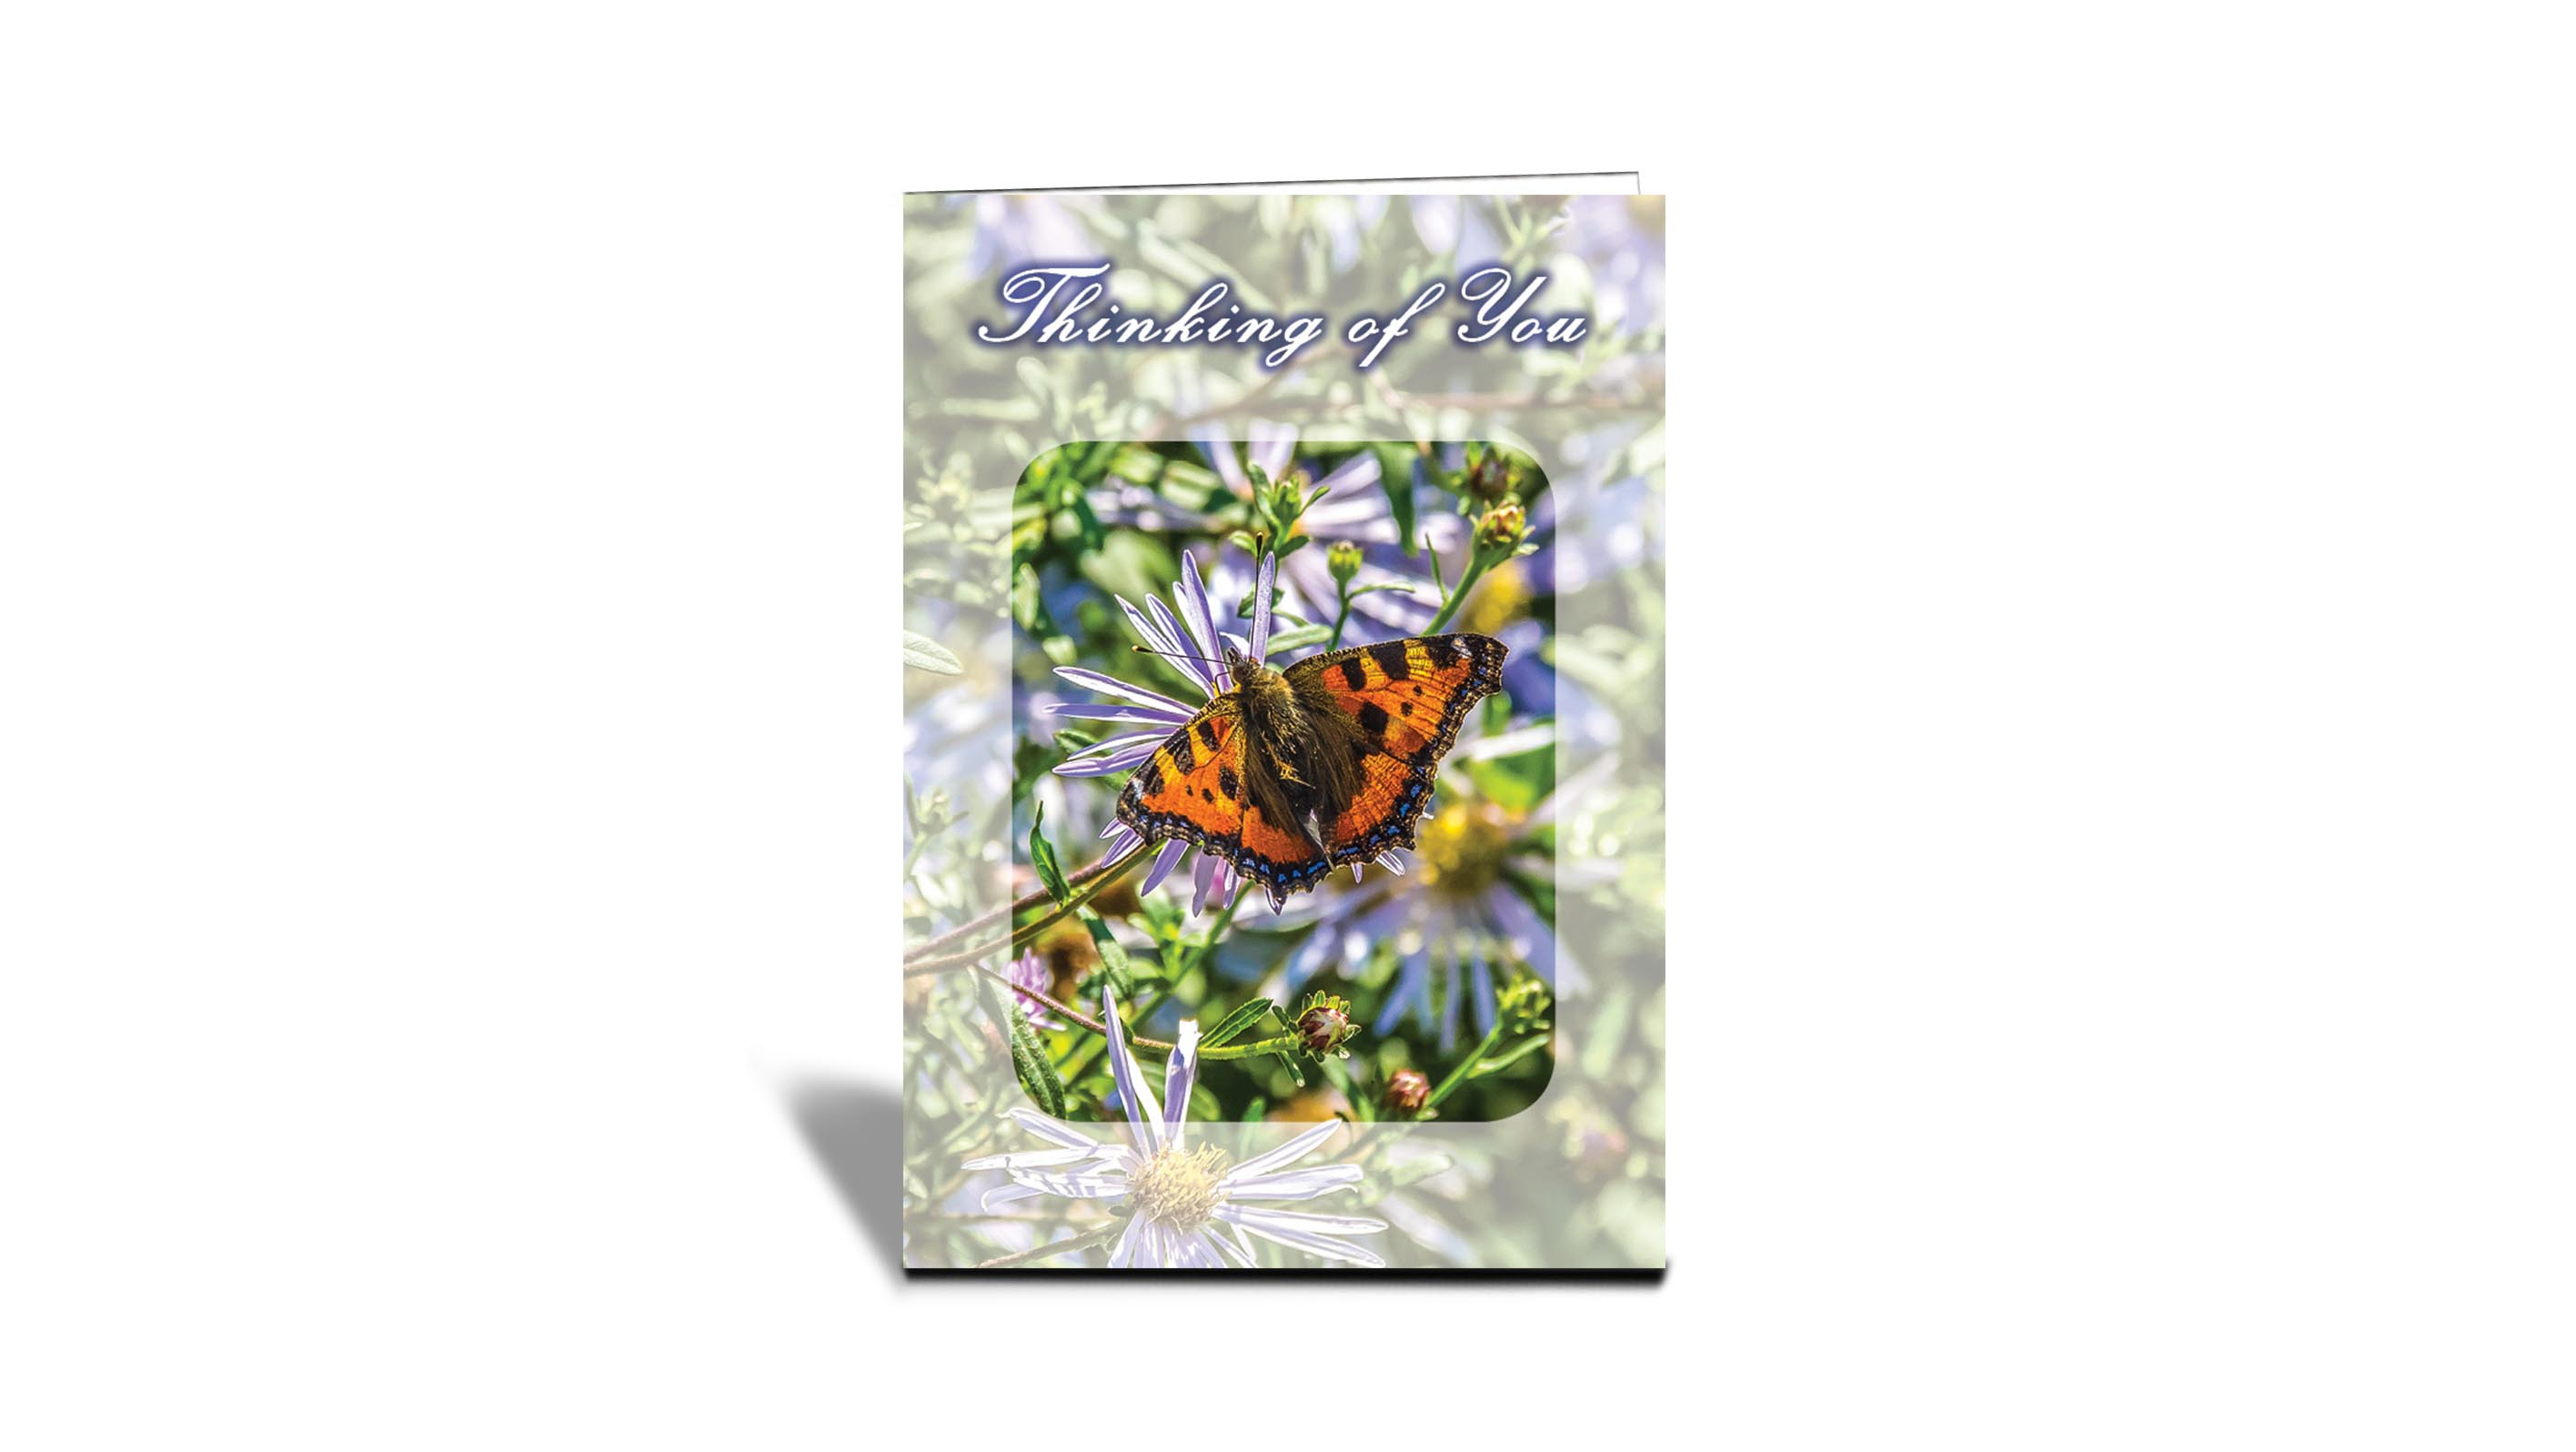 Butterfly Nature Inspirational Photo Greeting Cards With Text